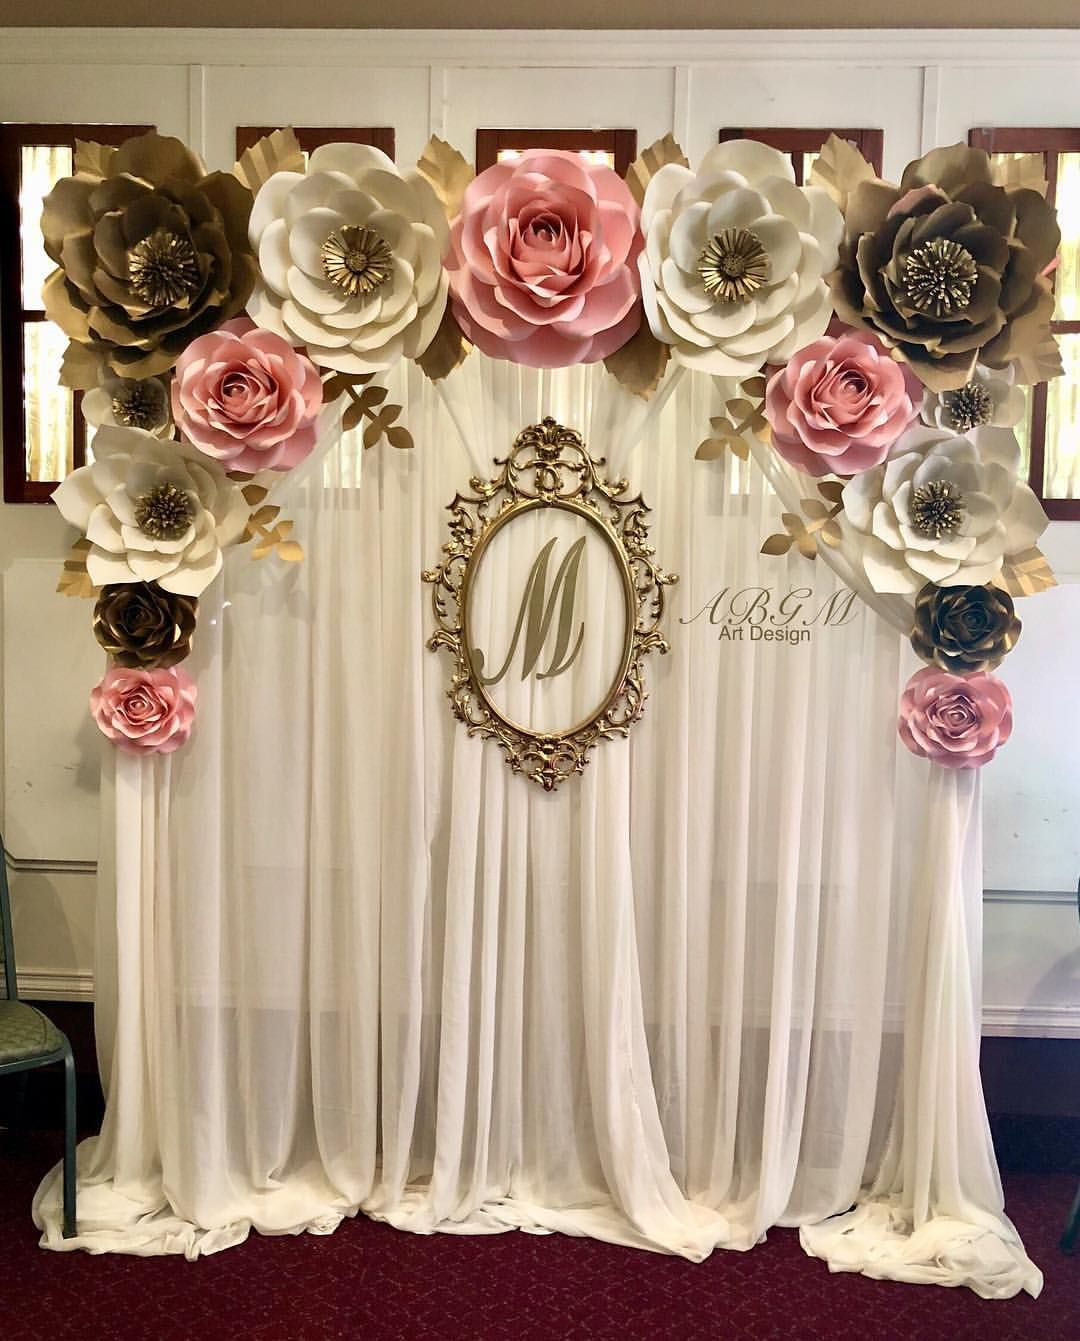 Blanca On Instagram Another Beautiful Paper Flower Backdrop Made For Melissa S Wedding Shower Thank You In 2020 Paper Flower Backdrop Paper Flowers Flower Backdrop